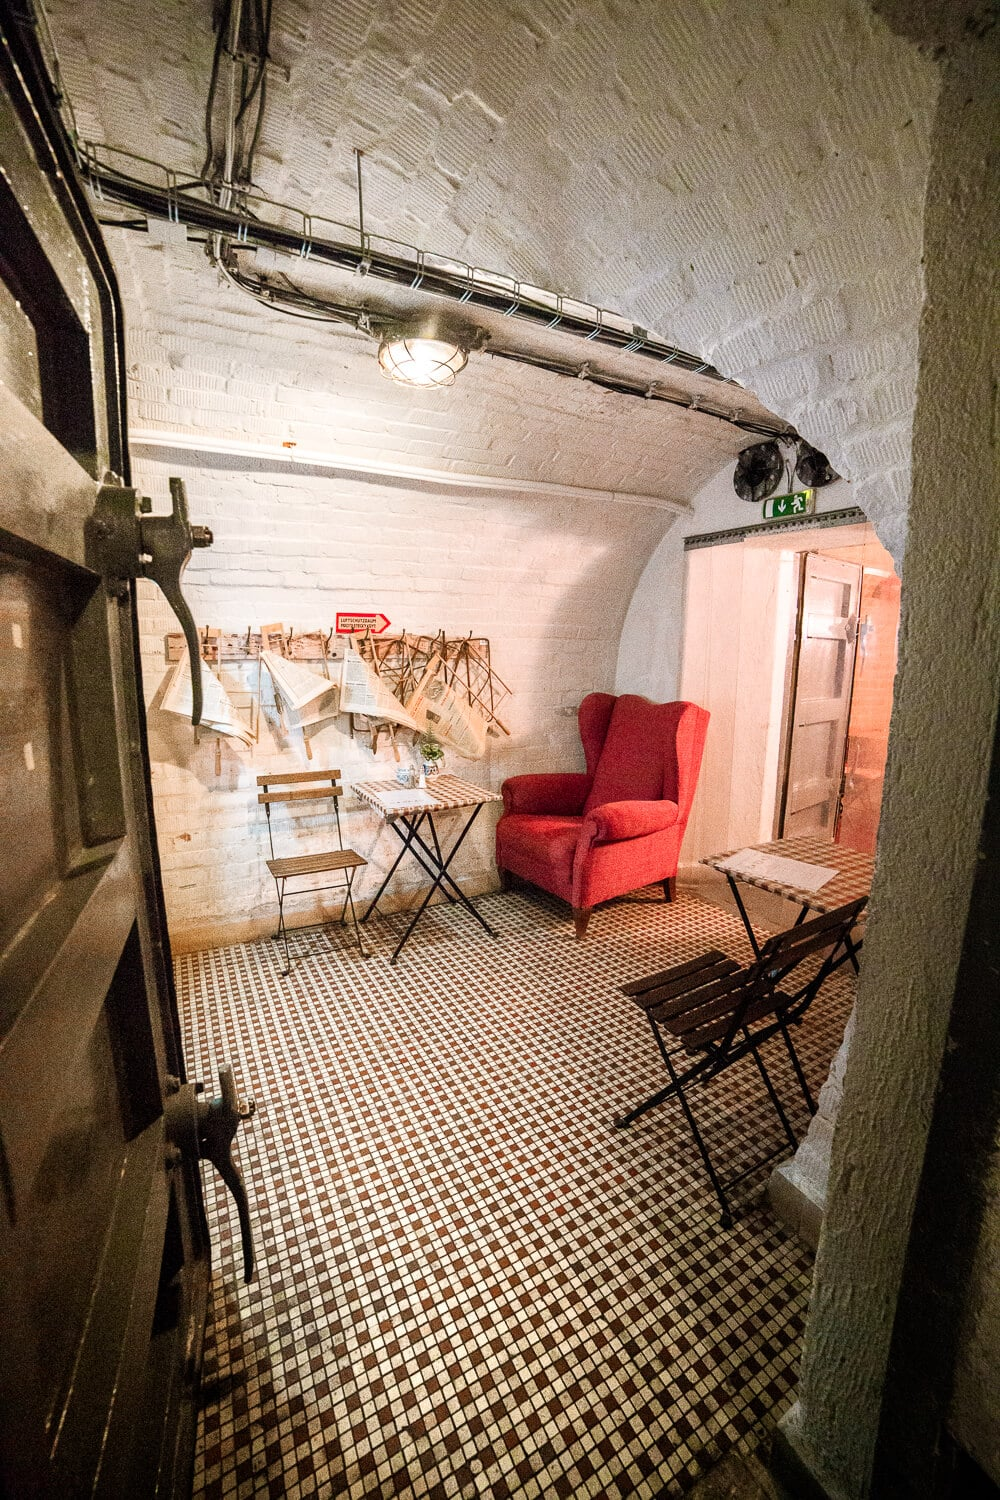 10-Z Bunker Hostel is a retired nuclear fallout shelter in Brno, Czech Republic. Tour the bunker, eat at the Soviet style Milk Bar and even spend the night in one of the most unique lodging experiences in the city! Keep reading for what to expect, photos and more..